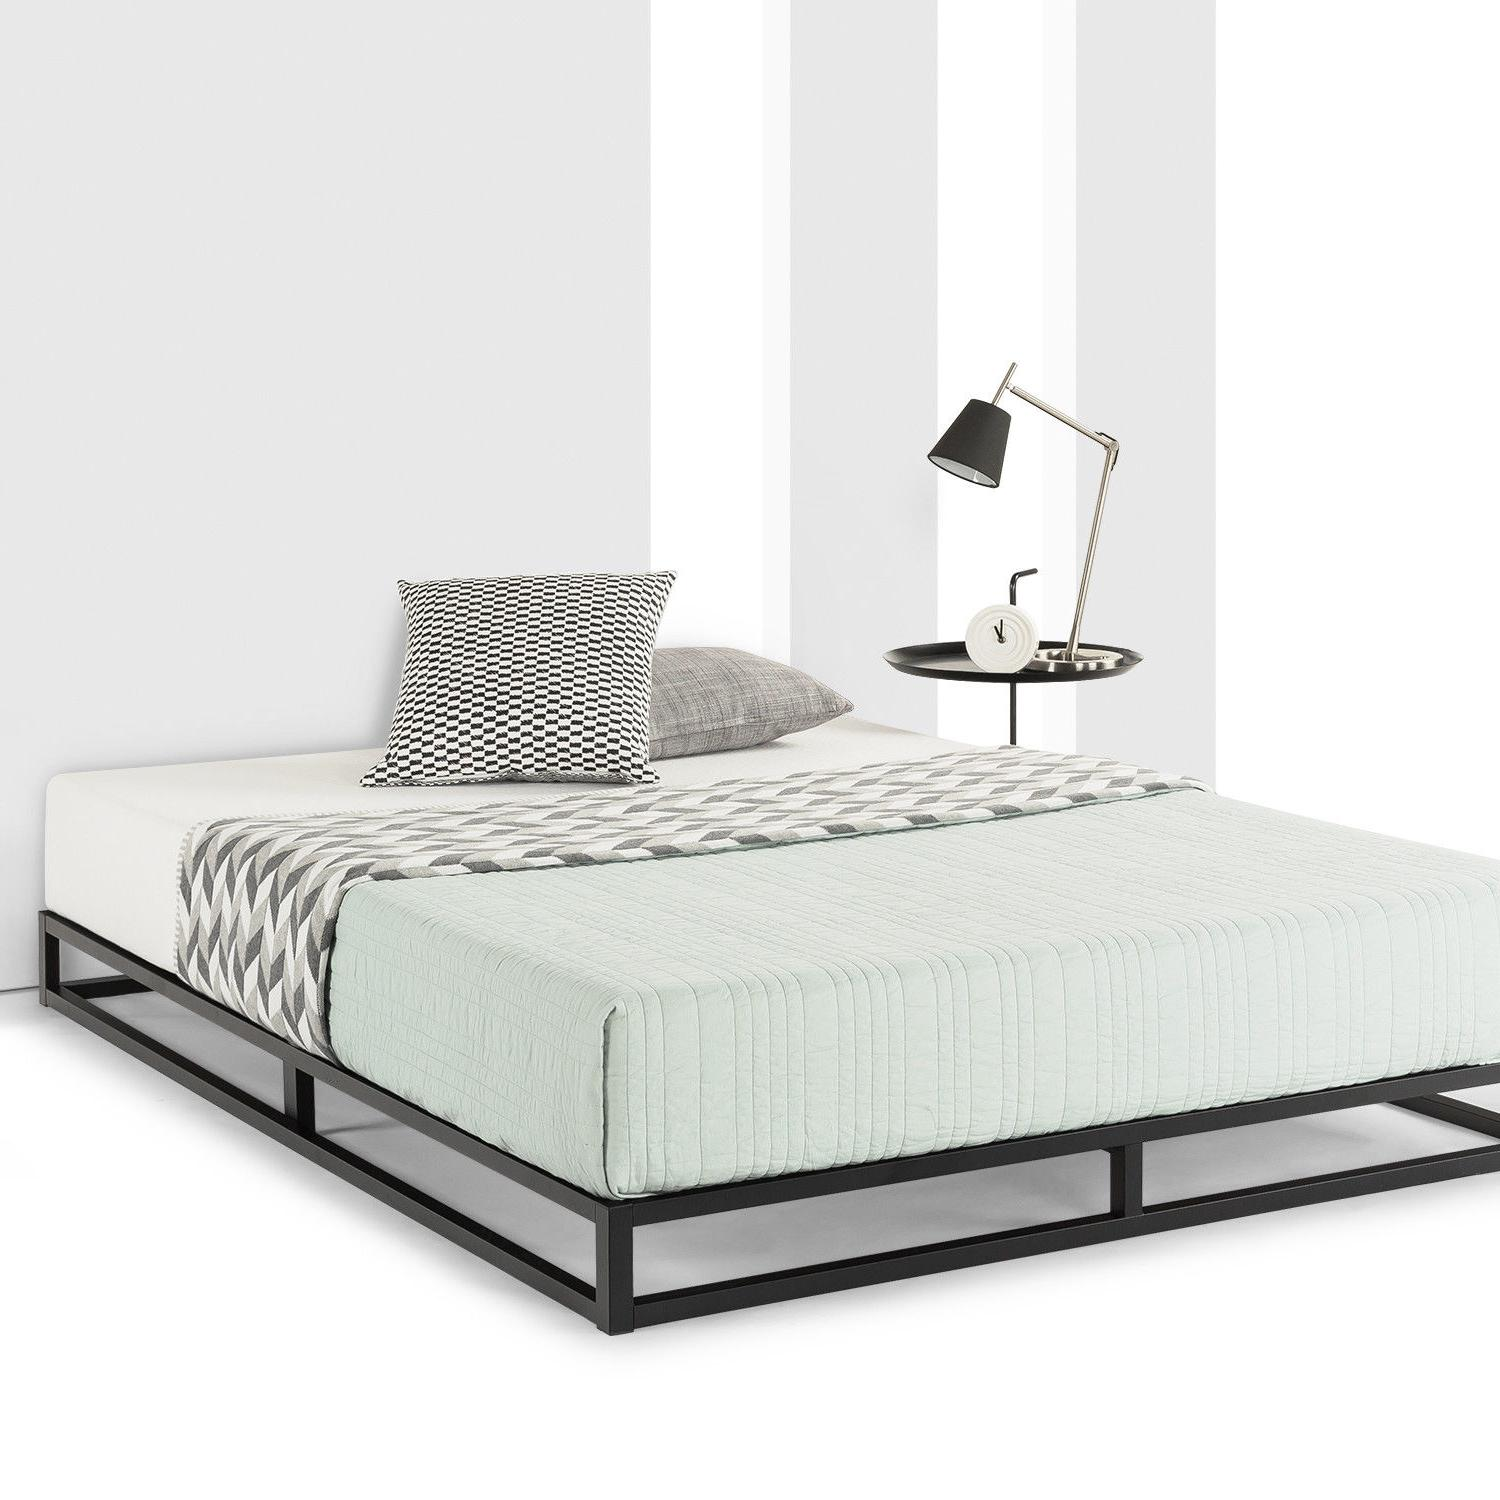 6 10 metal platform bed frame wooden